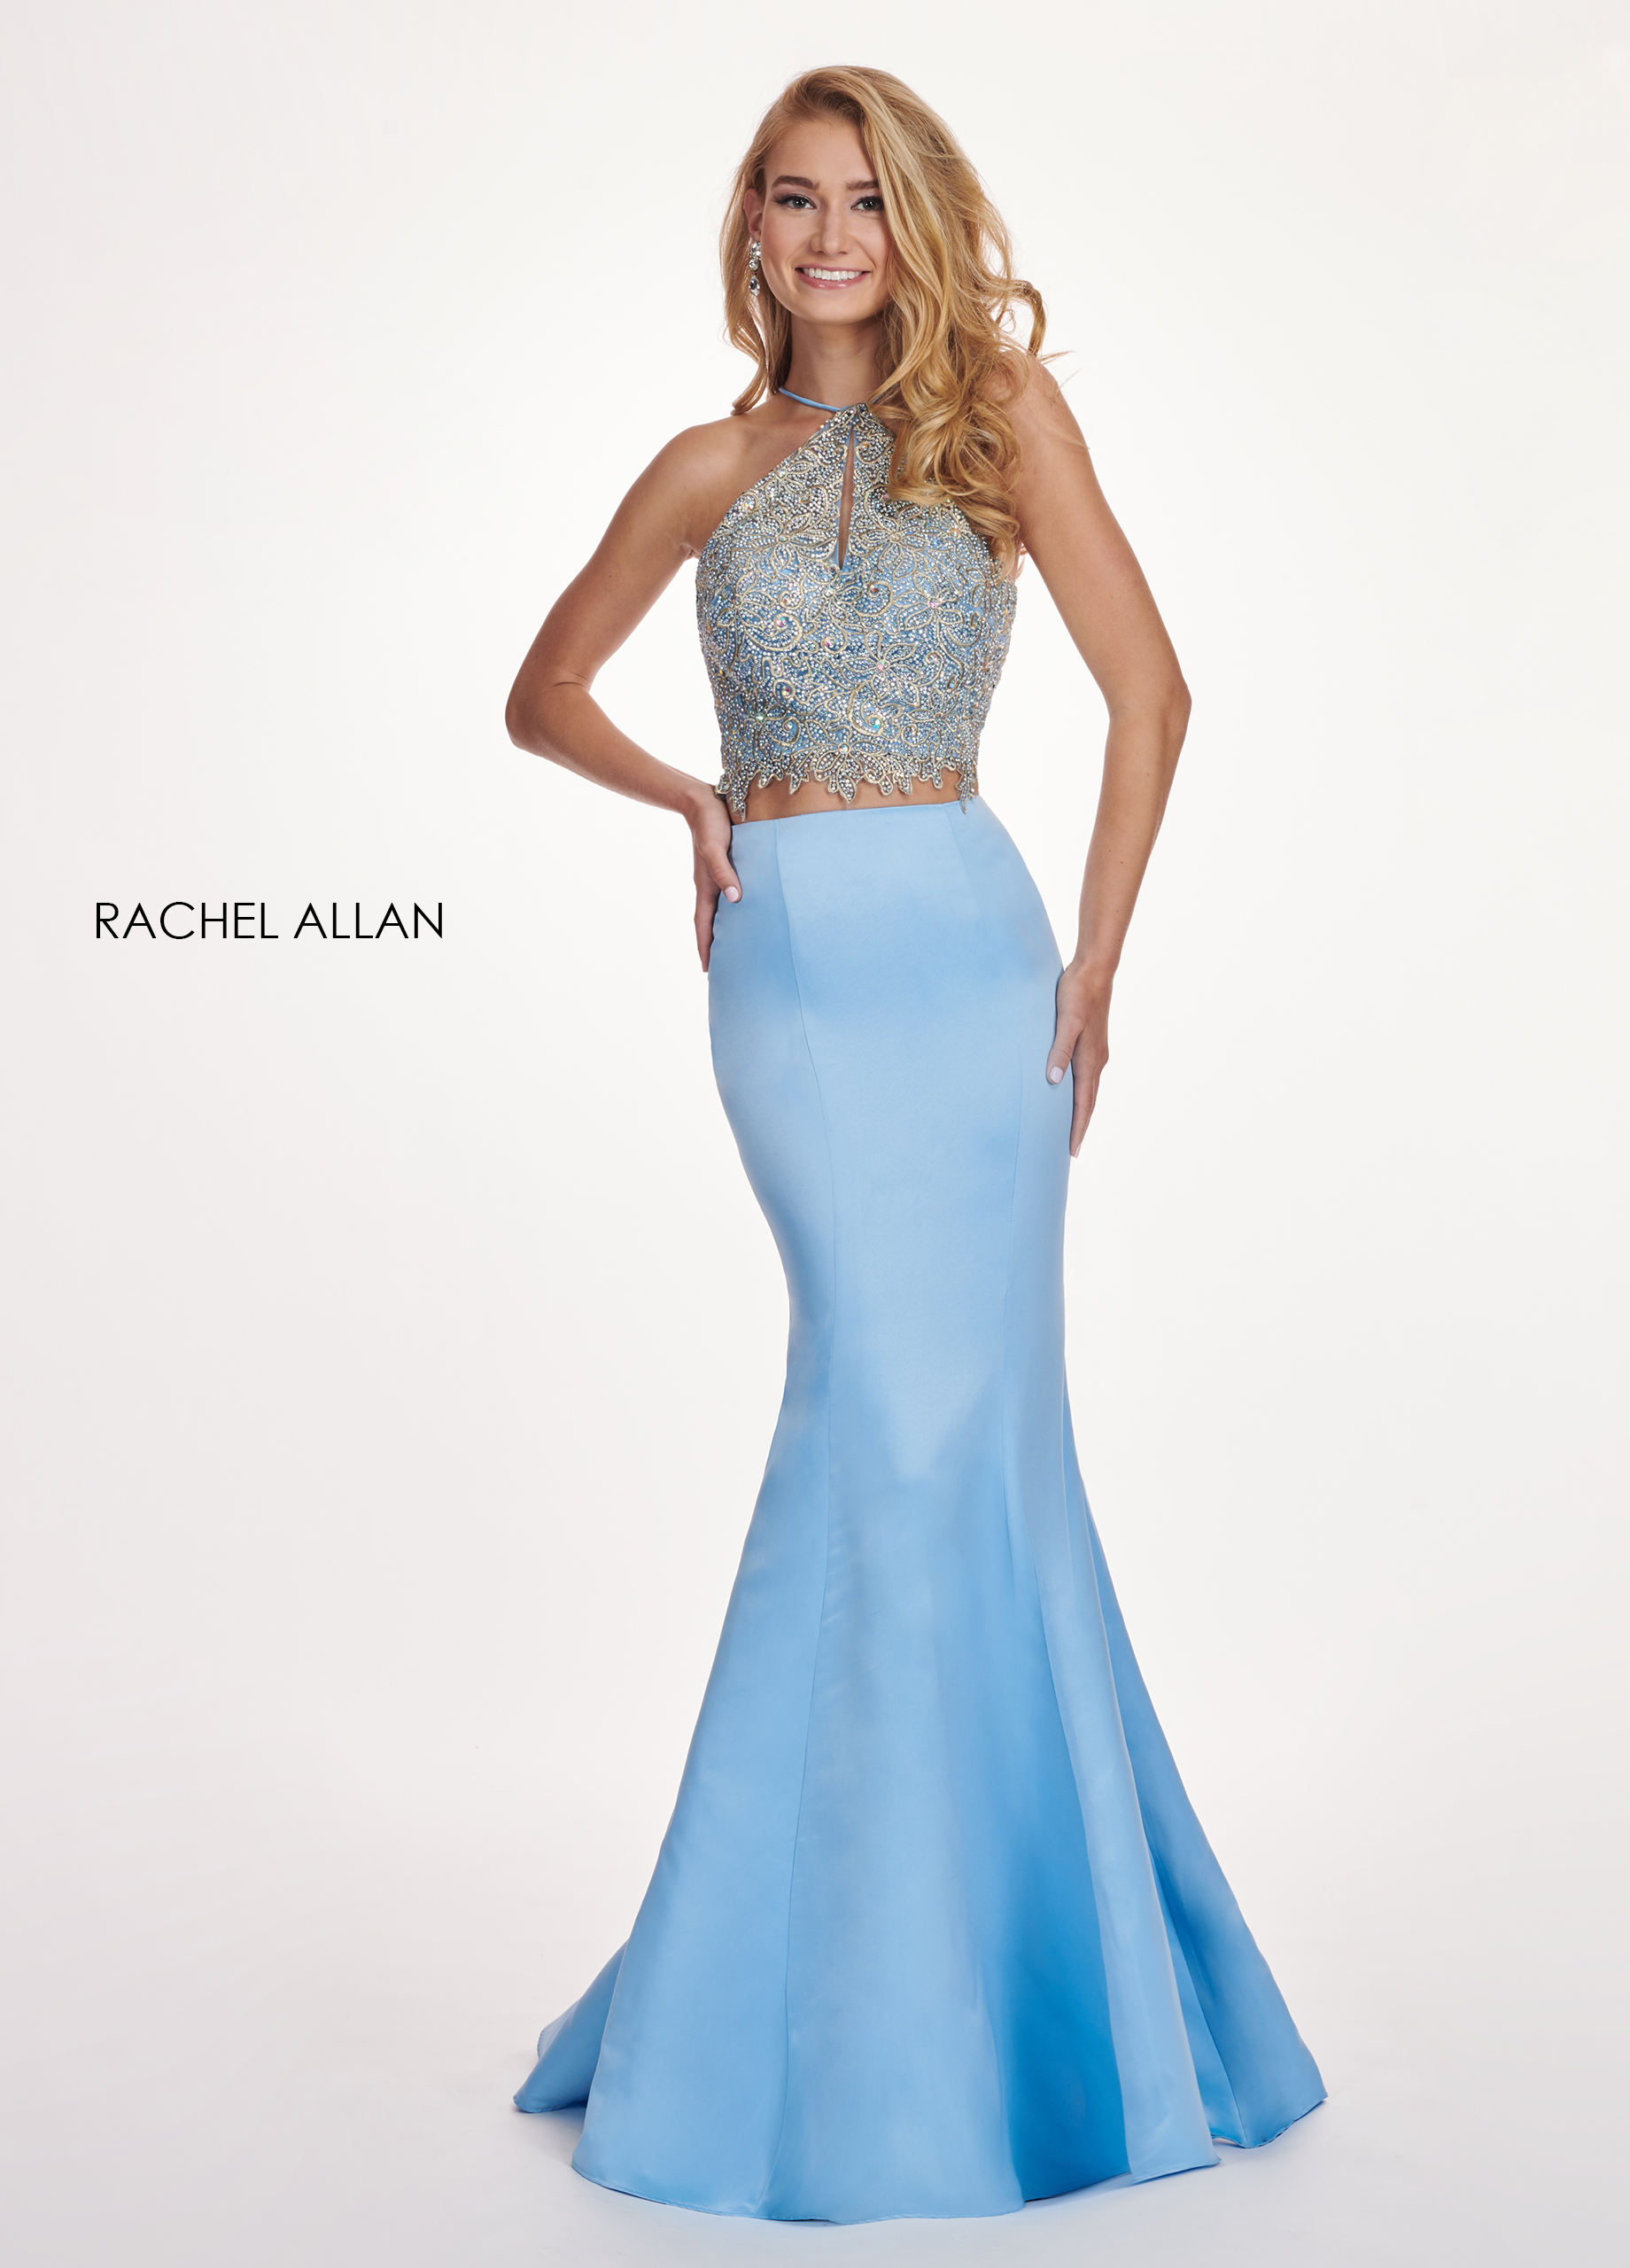 Halter Fit & Flare Prom Dresses in Blue Color